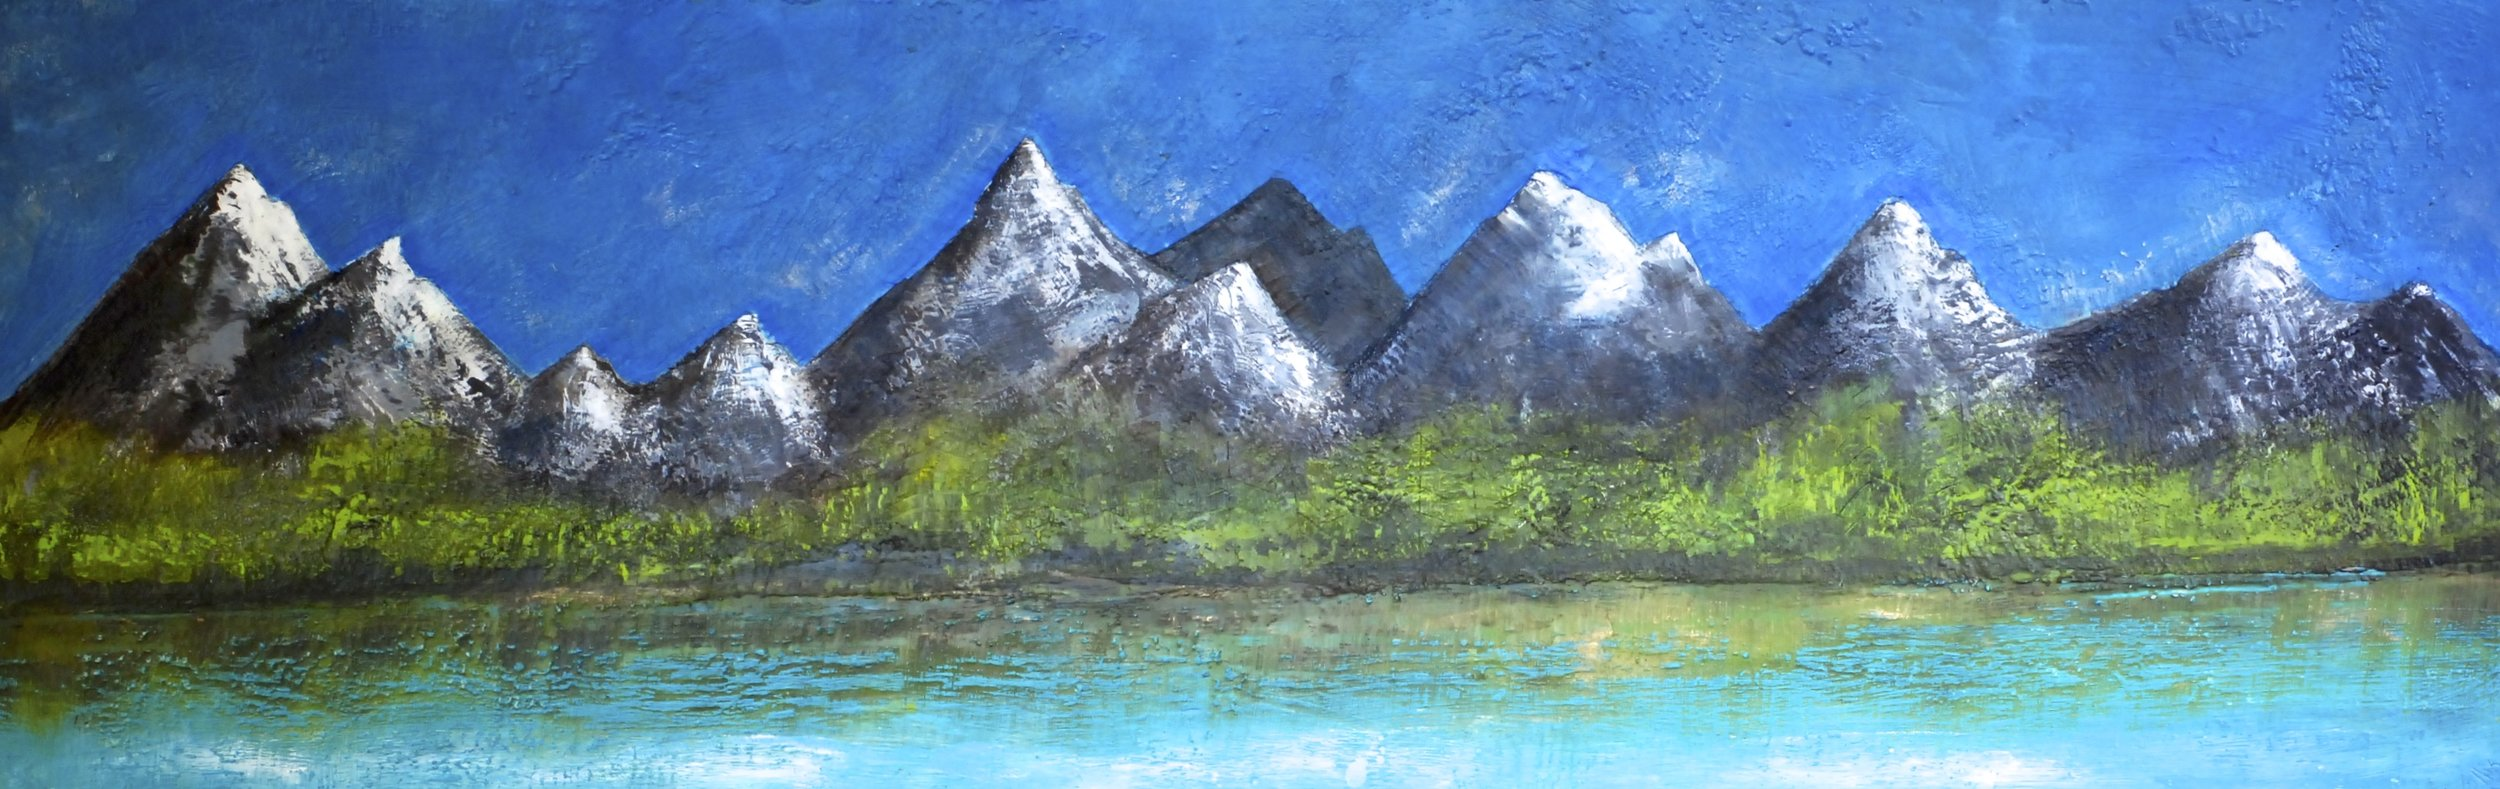 where the mountains touch the skies 72x24   SOLD